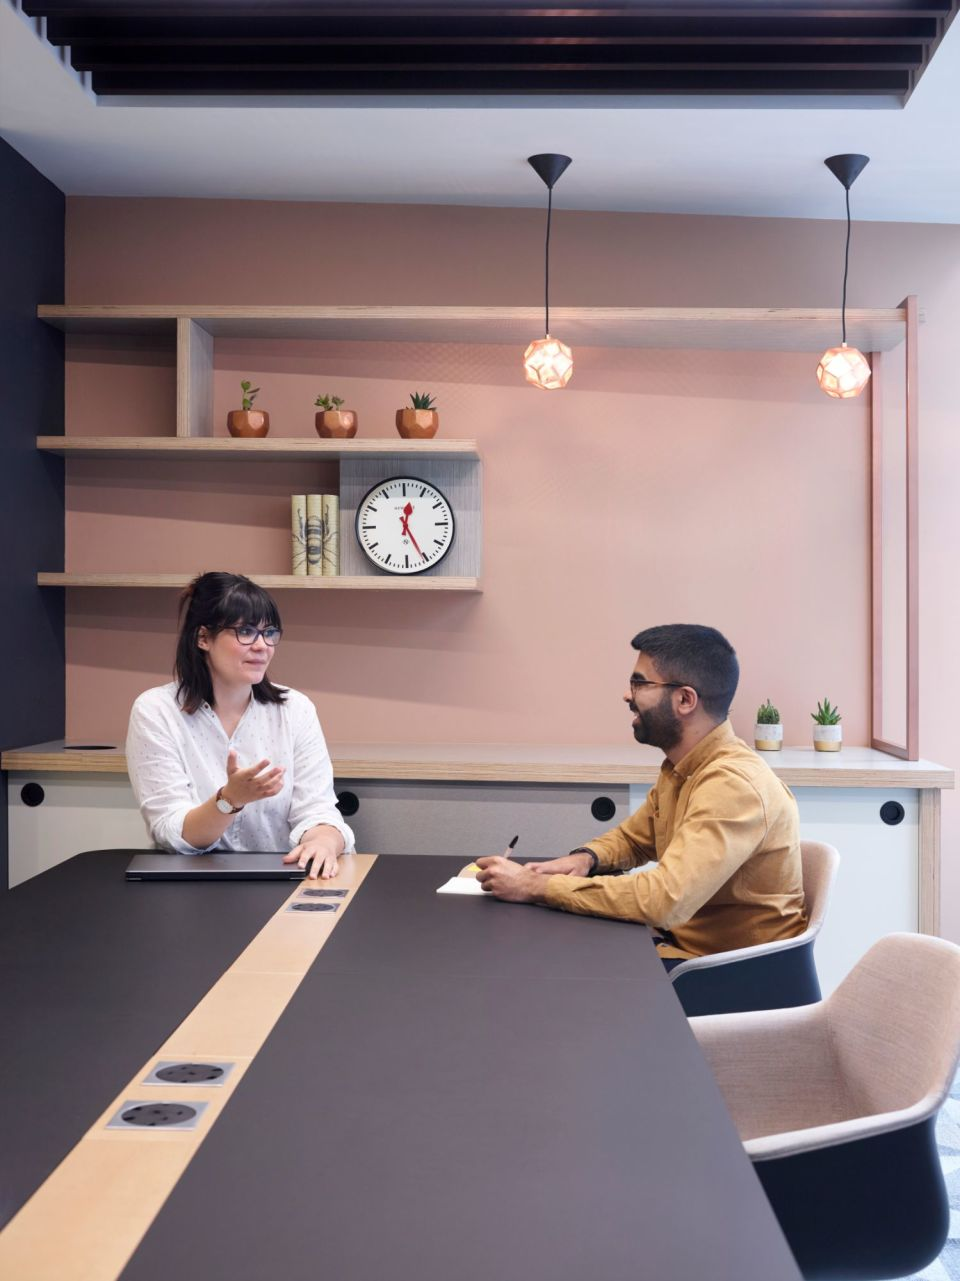 25% off meeting rooms in any Bruntwood Works building